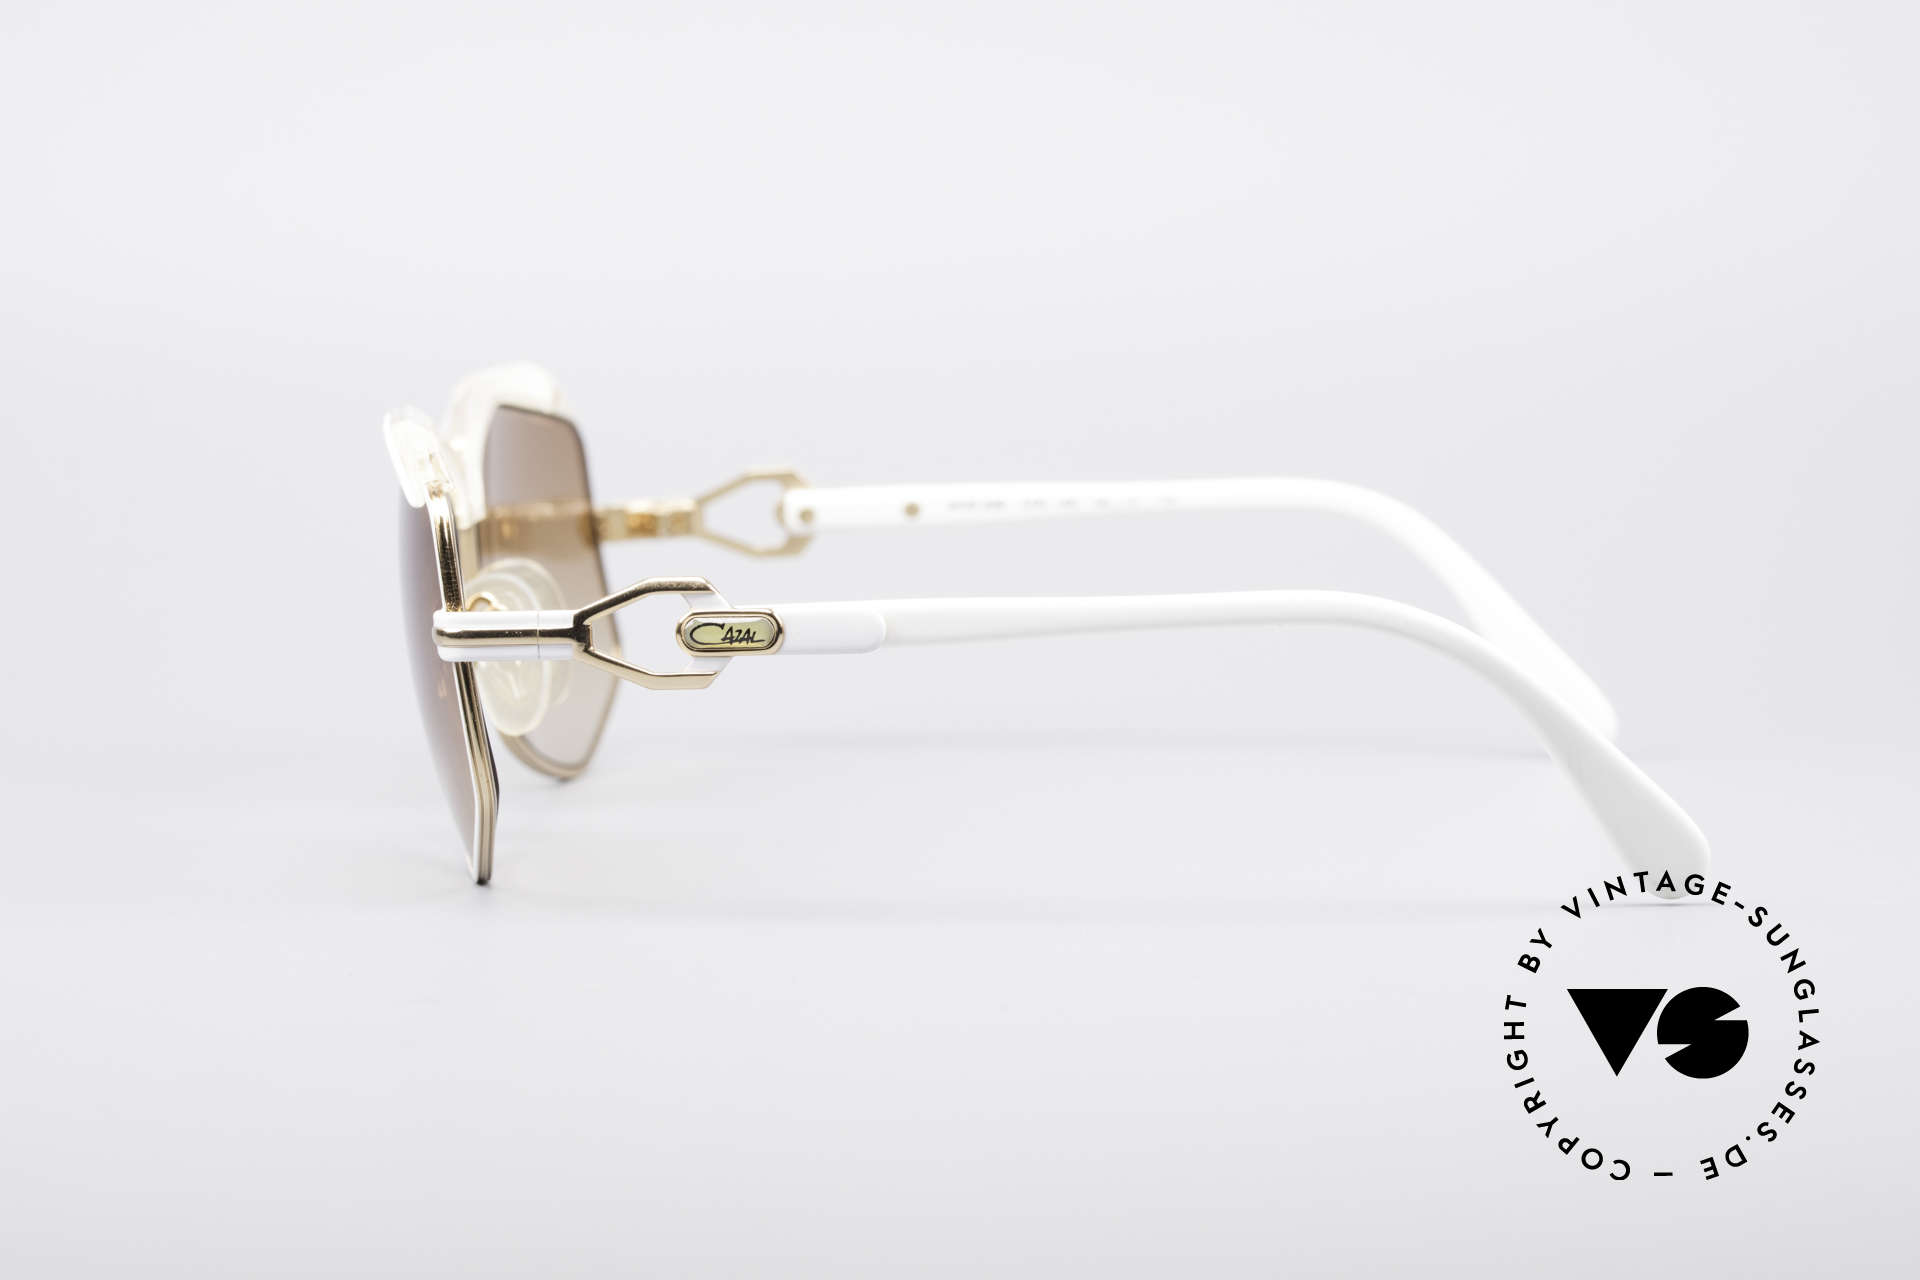 Cazal 230 80's Hip Hop Sunglasses, NO RETRO shades, but a 'W.Germany' ORIGINAL, Made for Women